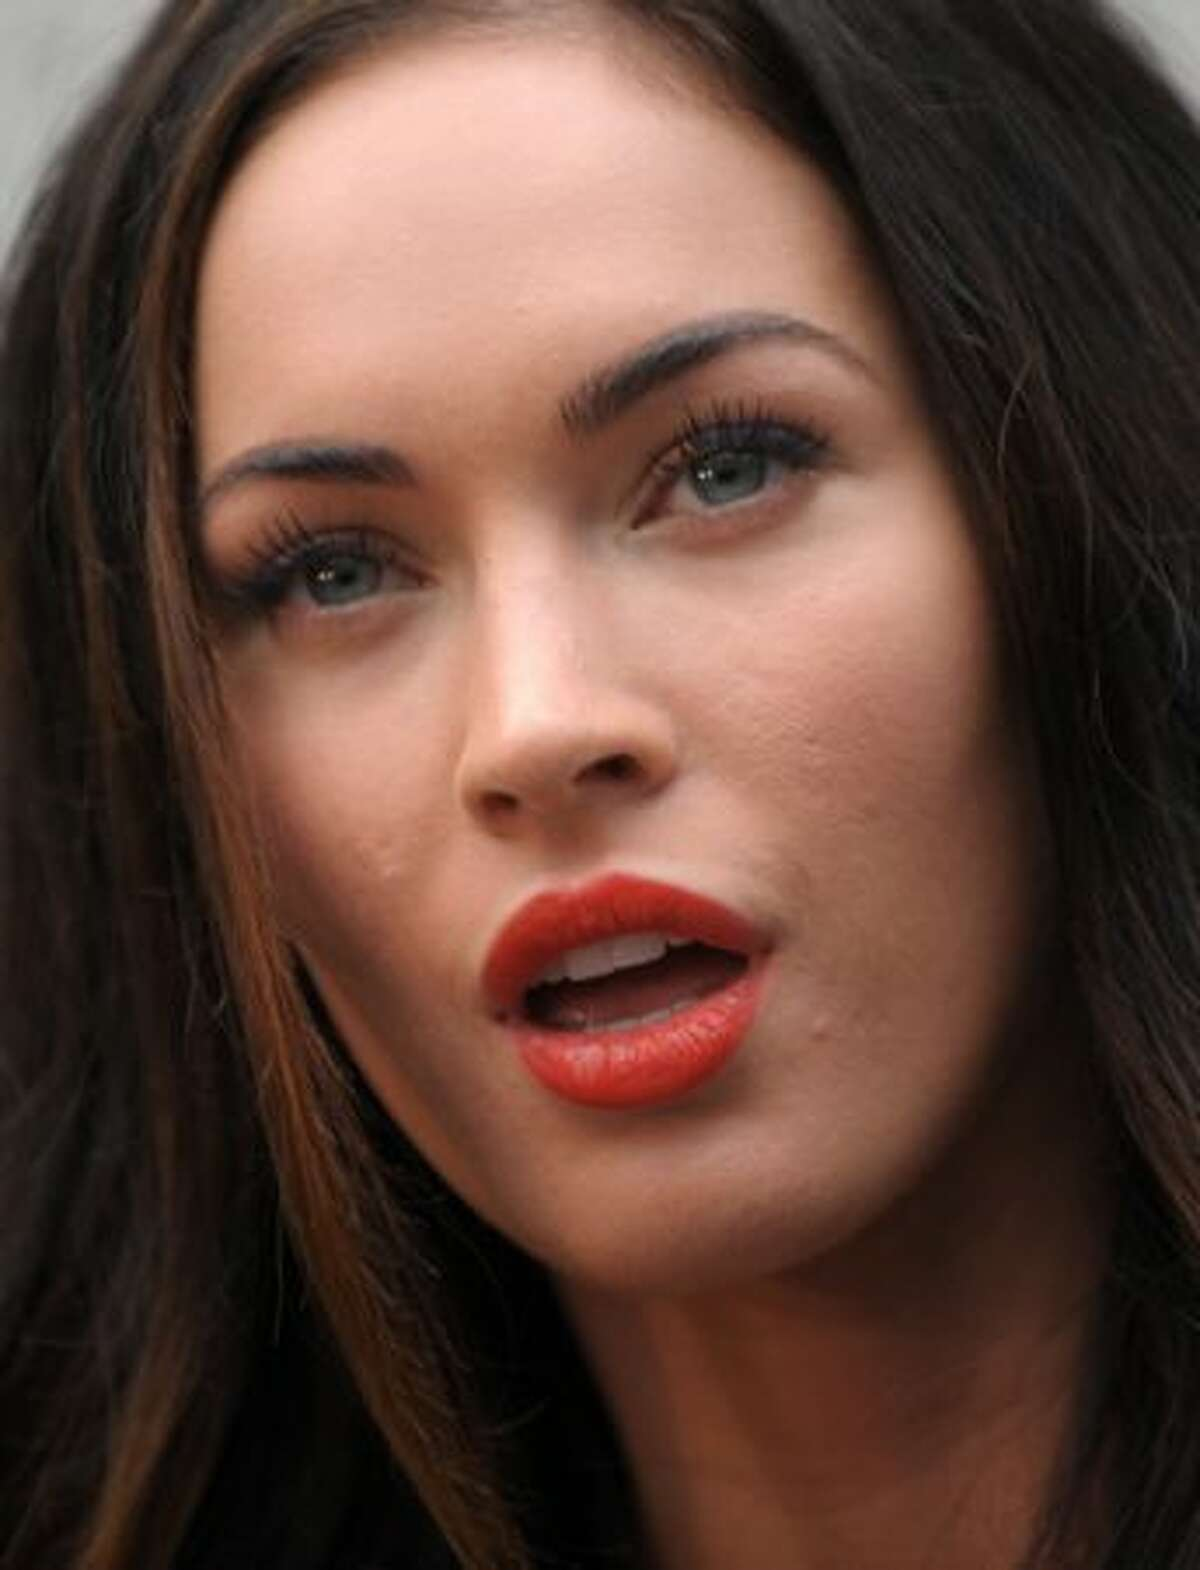 Actress Megan Fox poses as she arrives for the Emporio Armani spring-summer 2011 ready-to-wear collection during the women's fashion week in Milan.